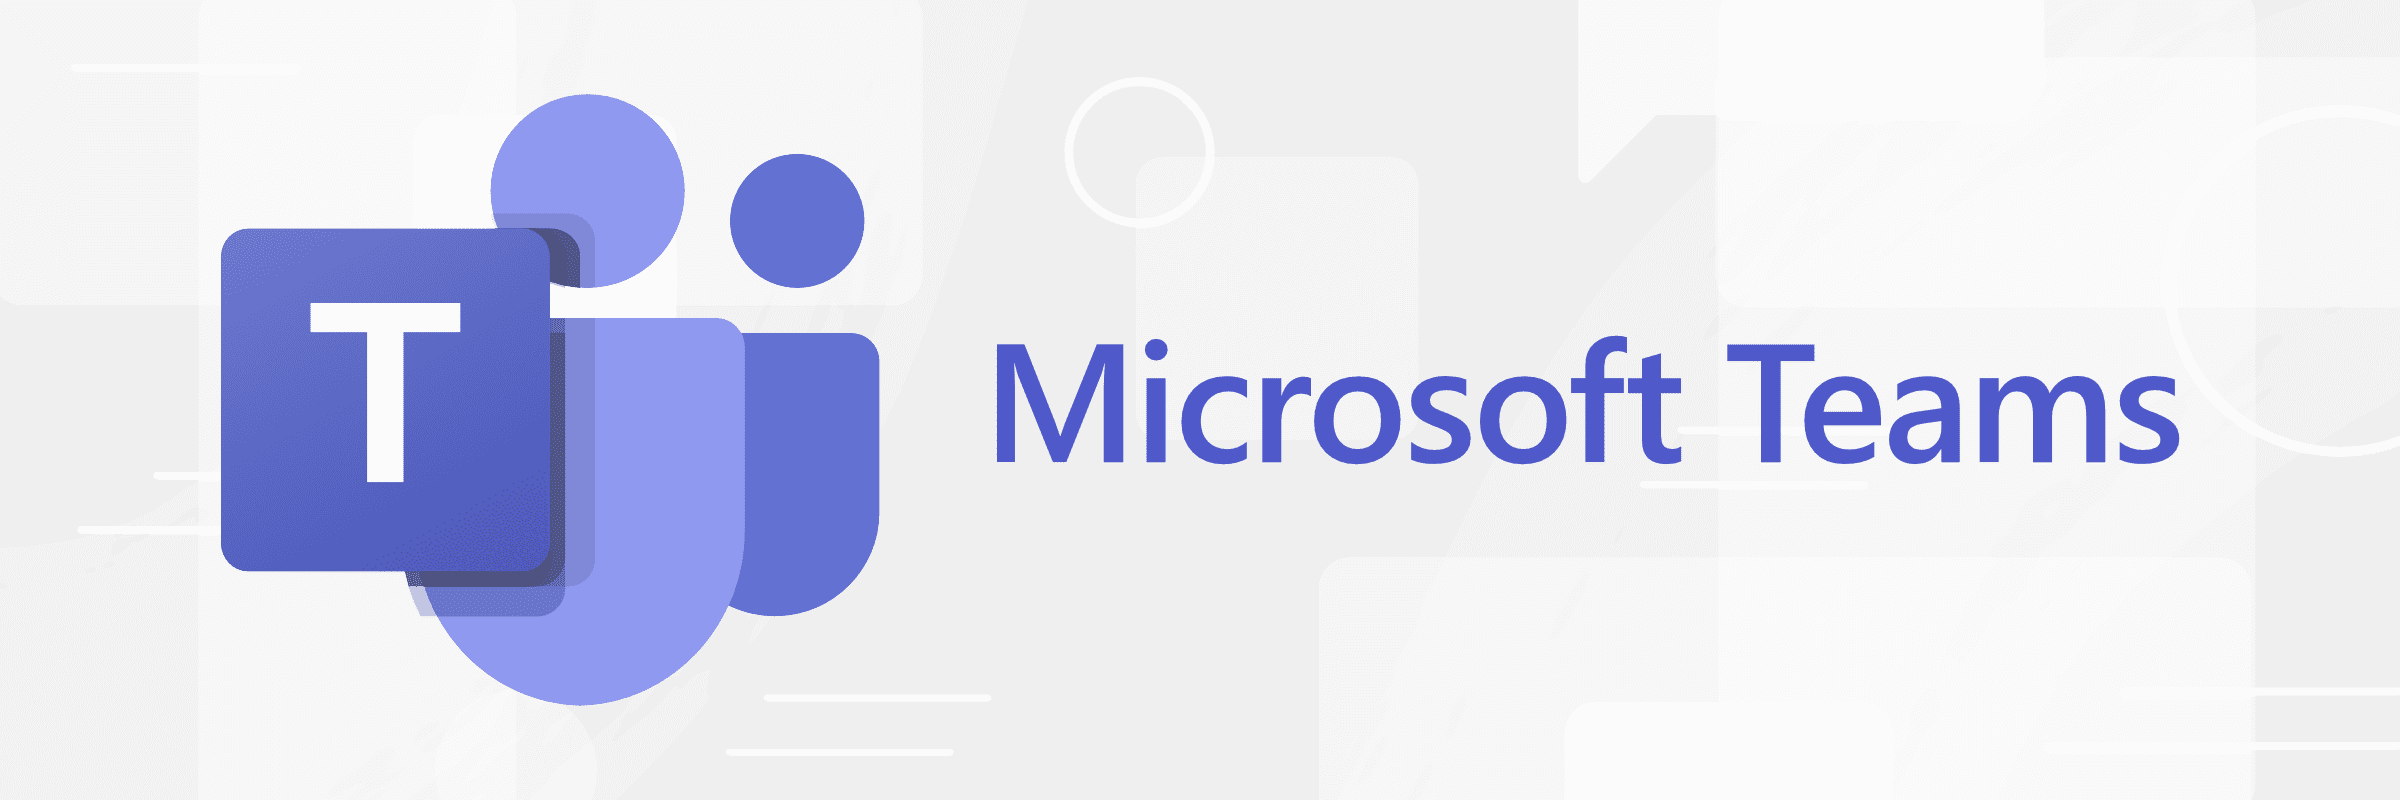 Introducing: Integration with Microsoft Teams